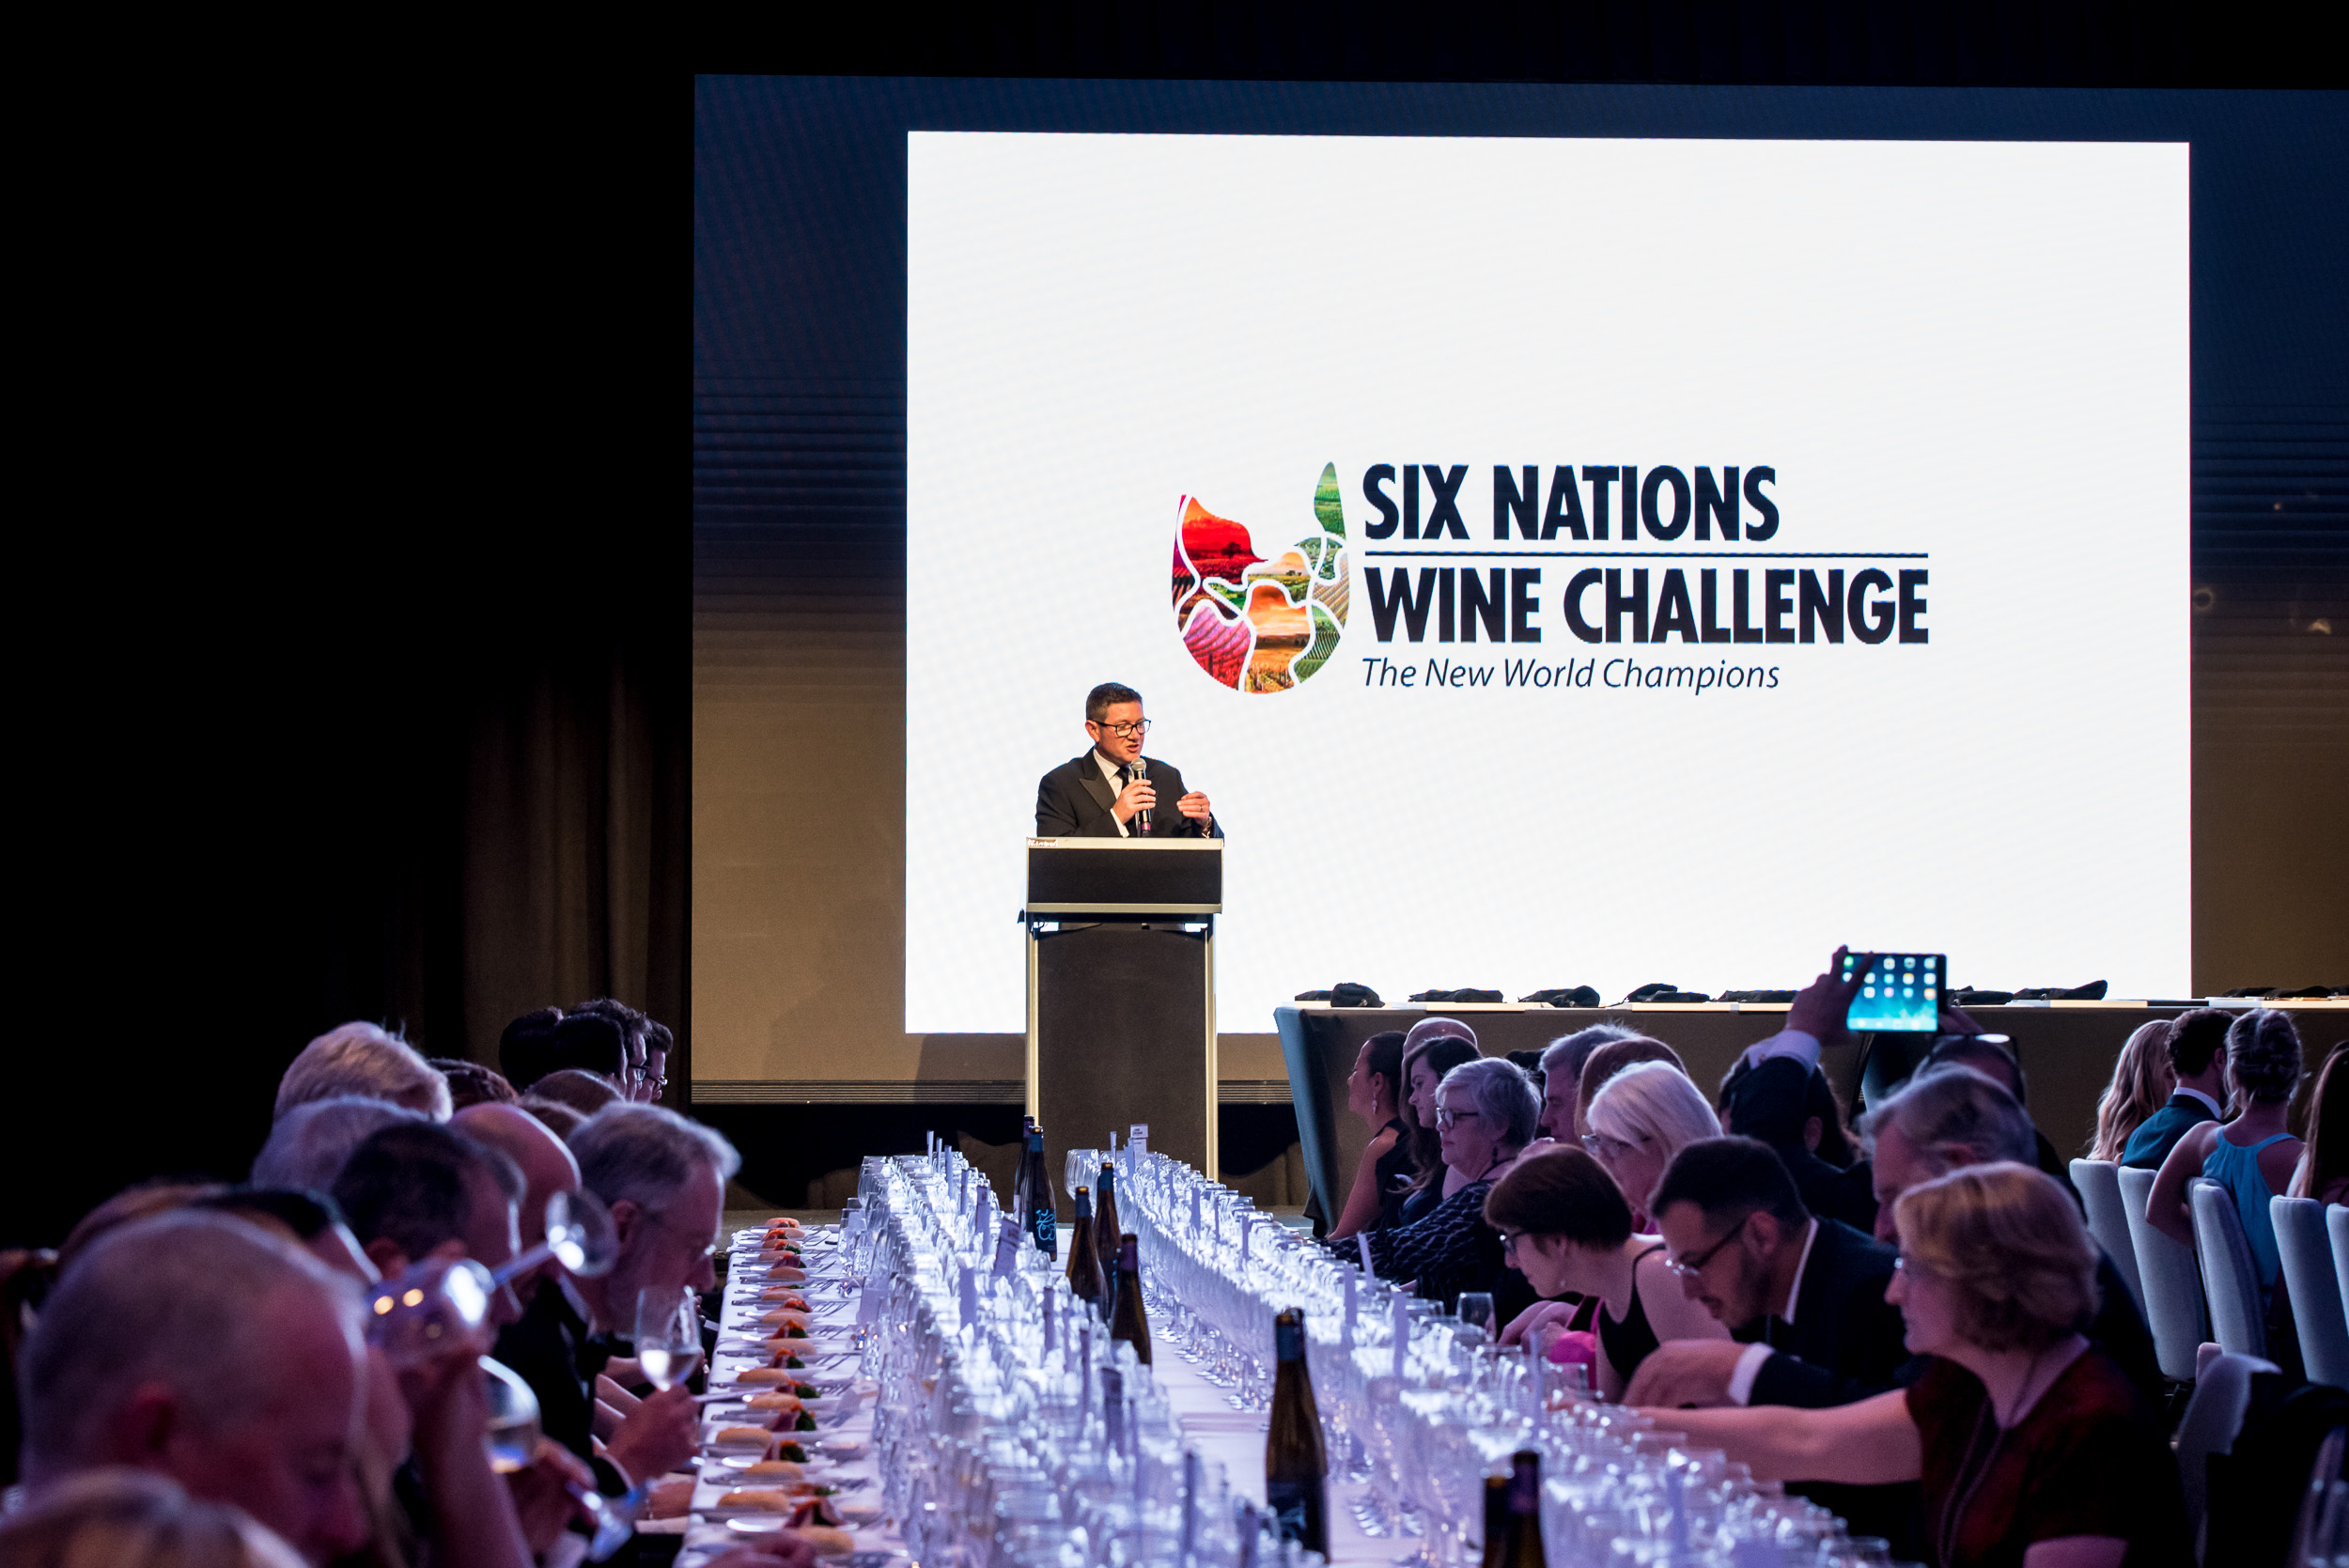 Six Nations Wine Challenge Dinner Master of Ceremonies - Luxury Wine Trails exclusive wine tours to